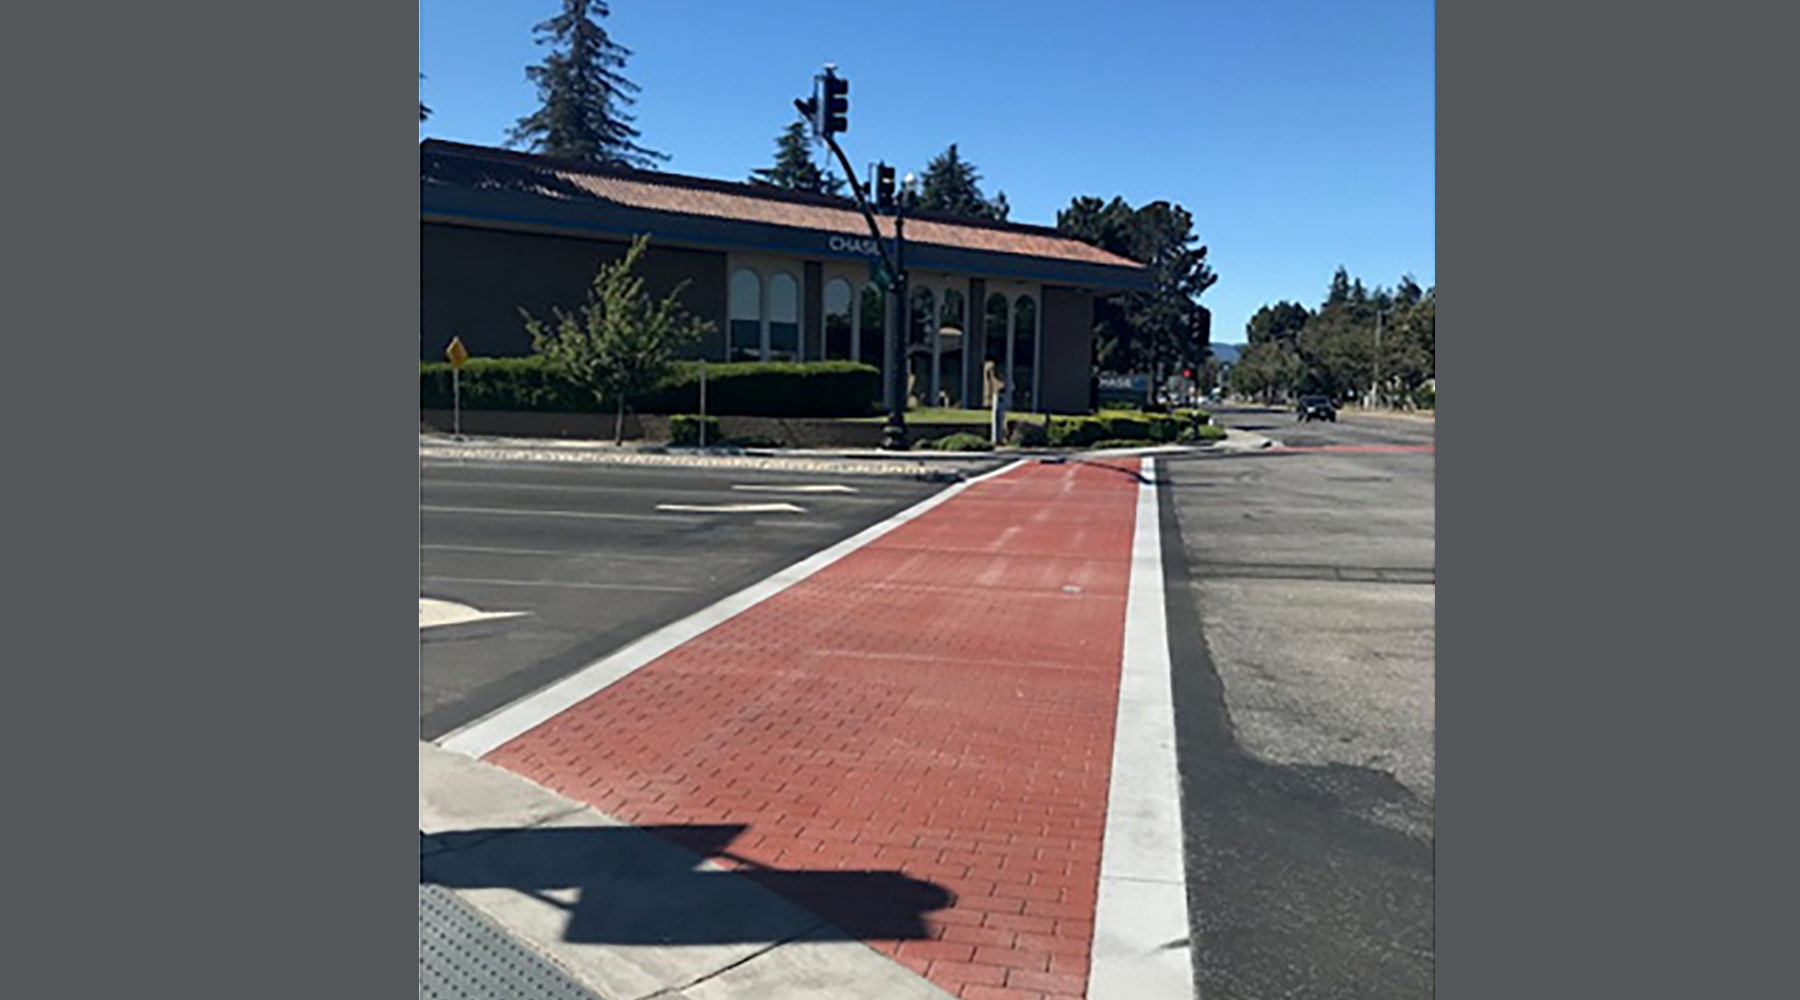 Stamped AC crosswalk at Iowa/Mathilda intersection with new traffic signal pole and handicap ramps.